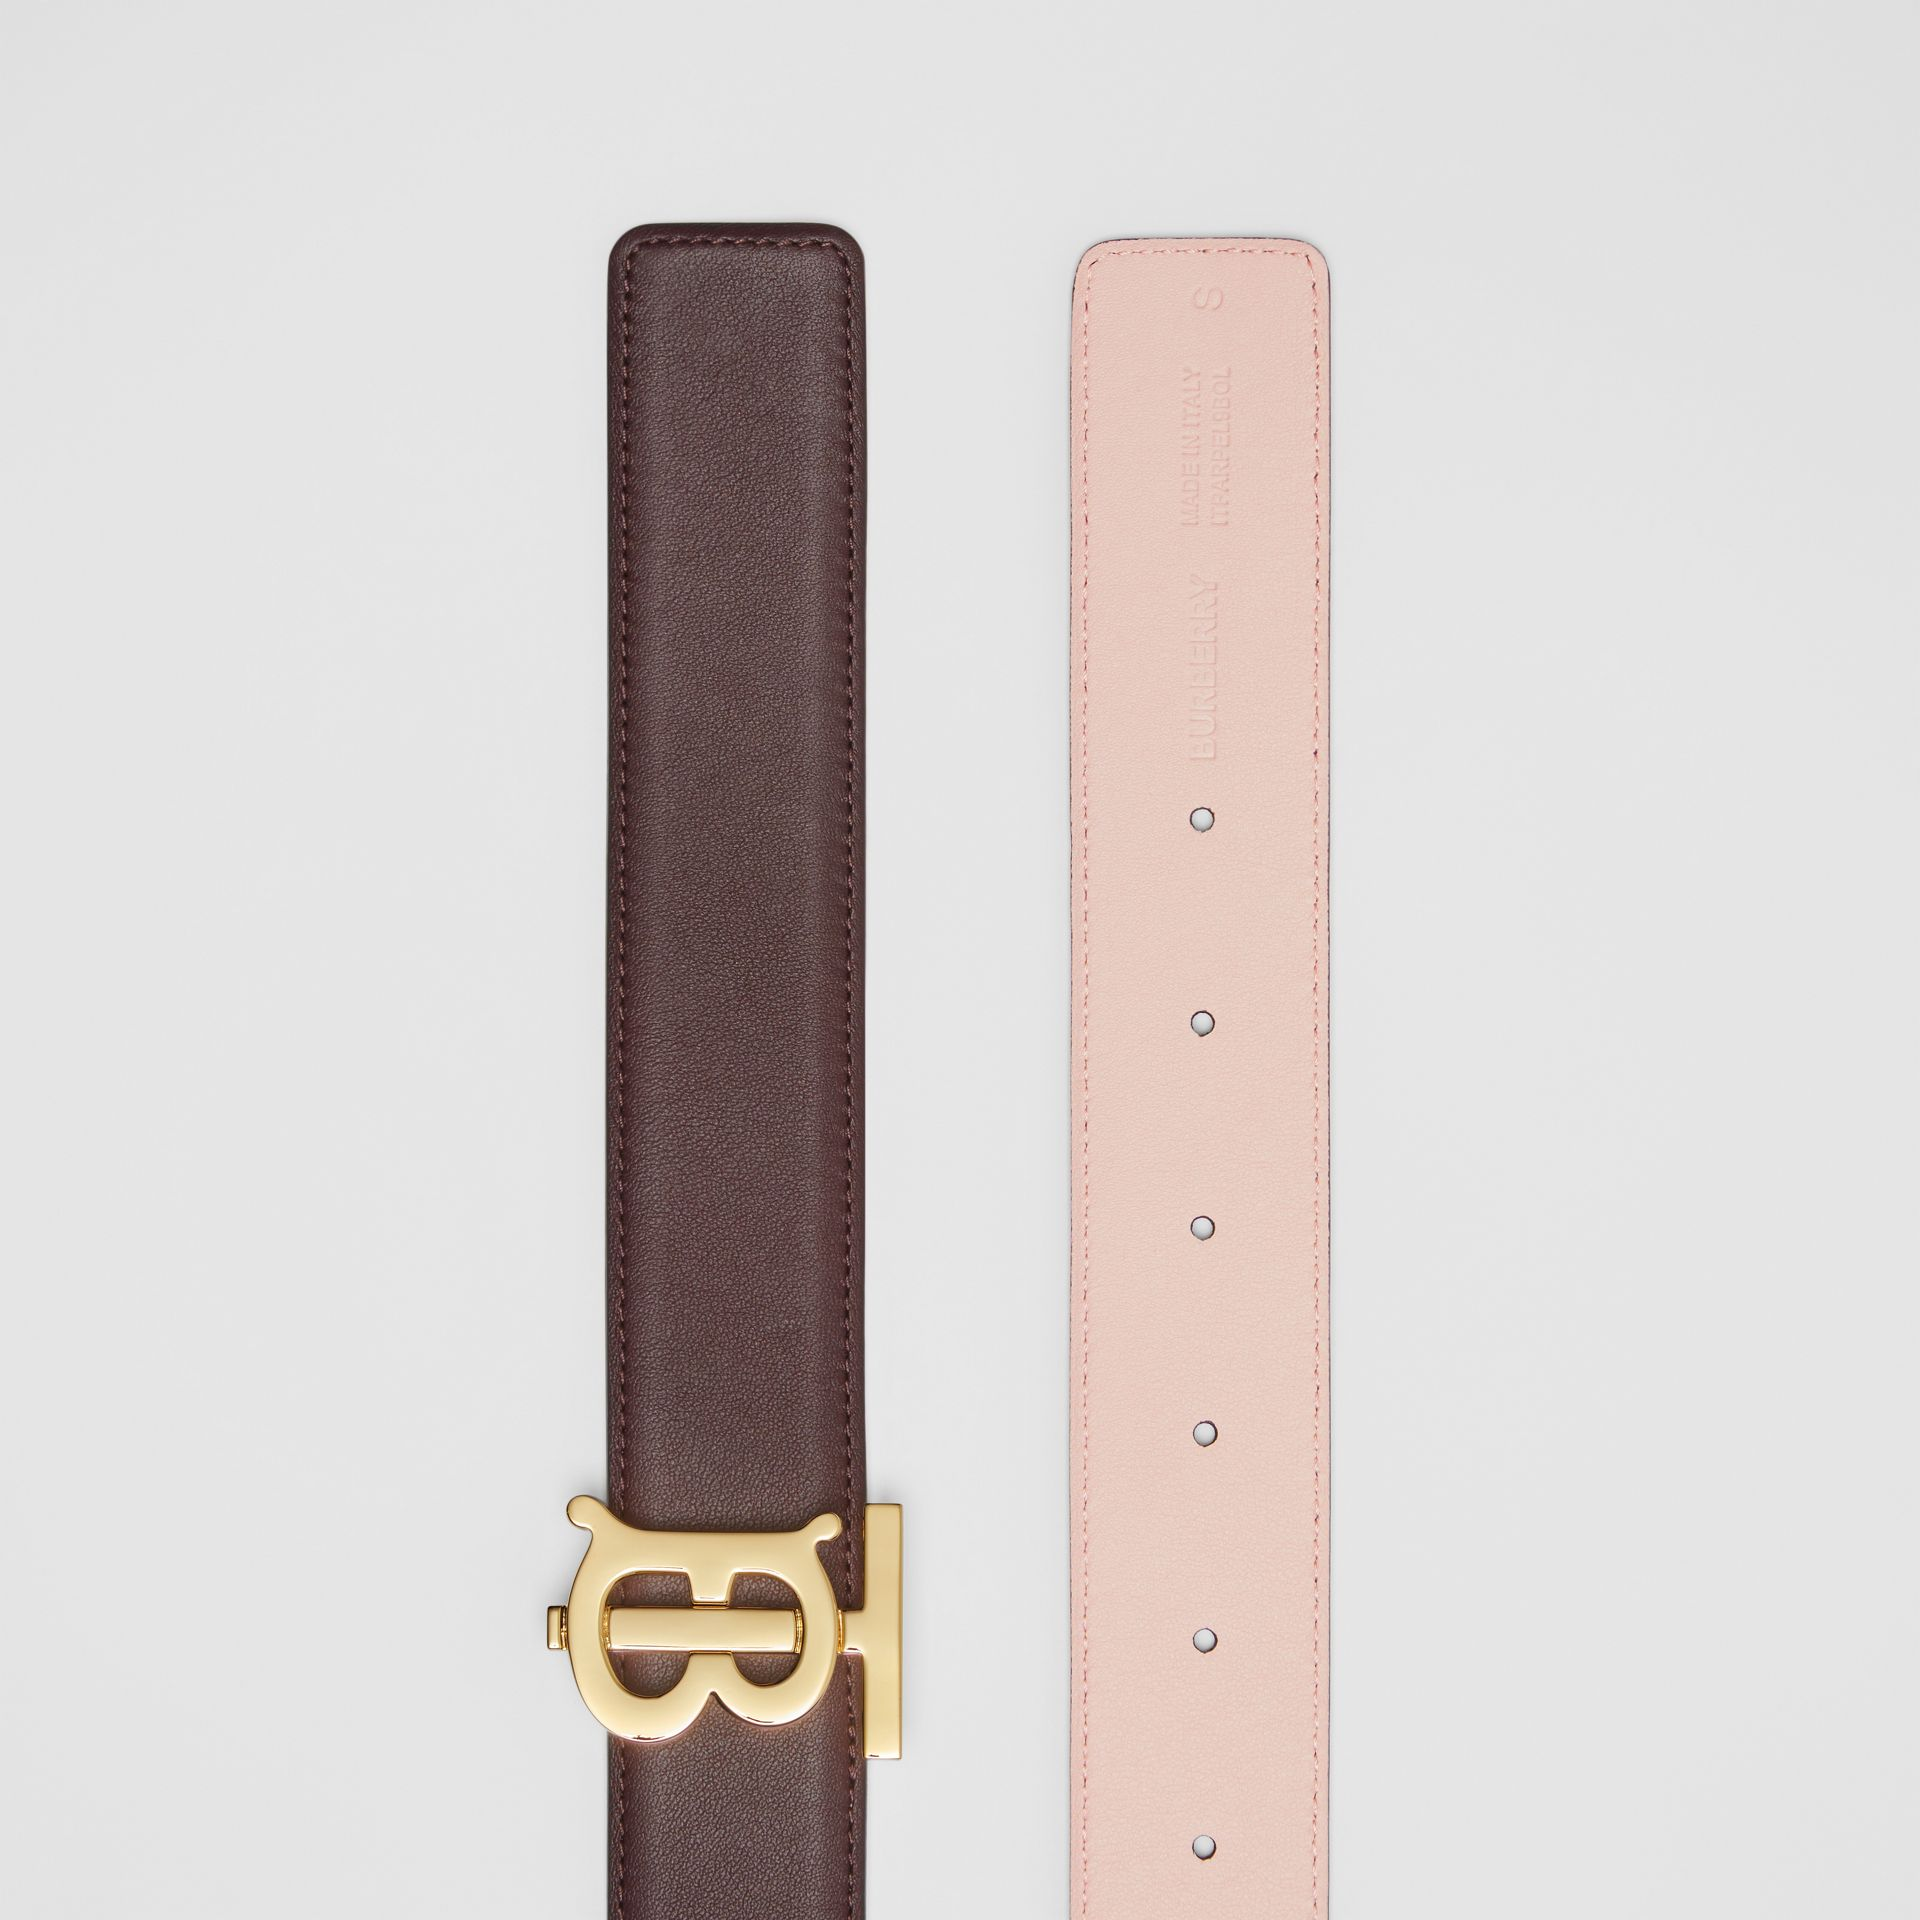 Ceinture en cuir réversible Monogram (Oxblood/beige Rose) - Femme | Burberry Canada - photo de la galerie 6